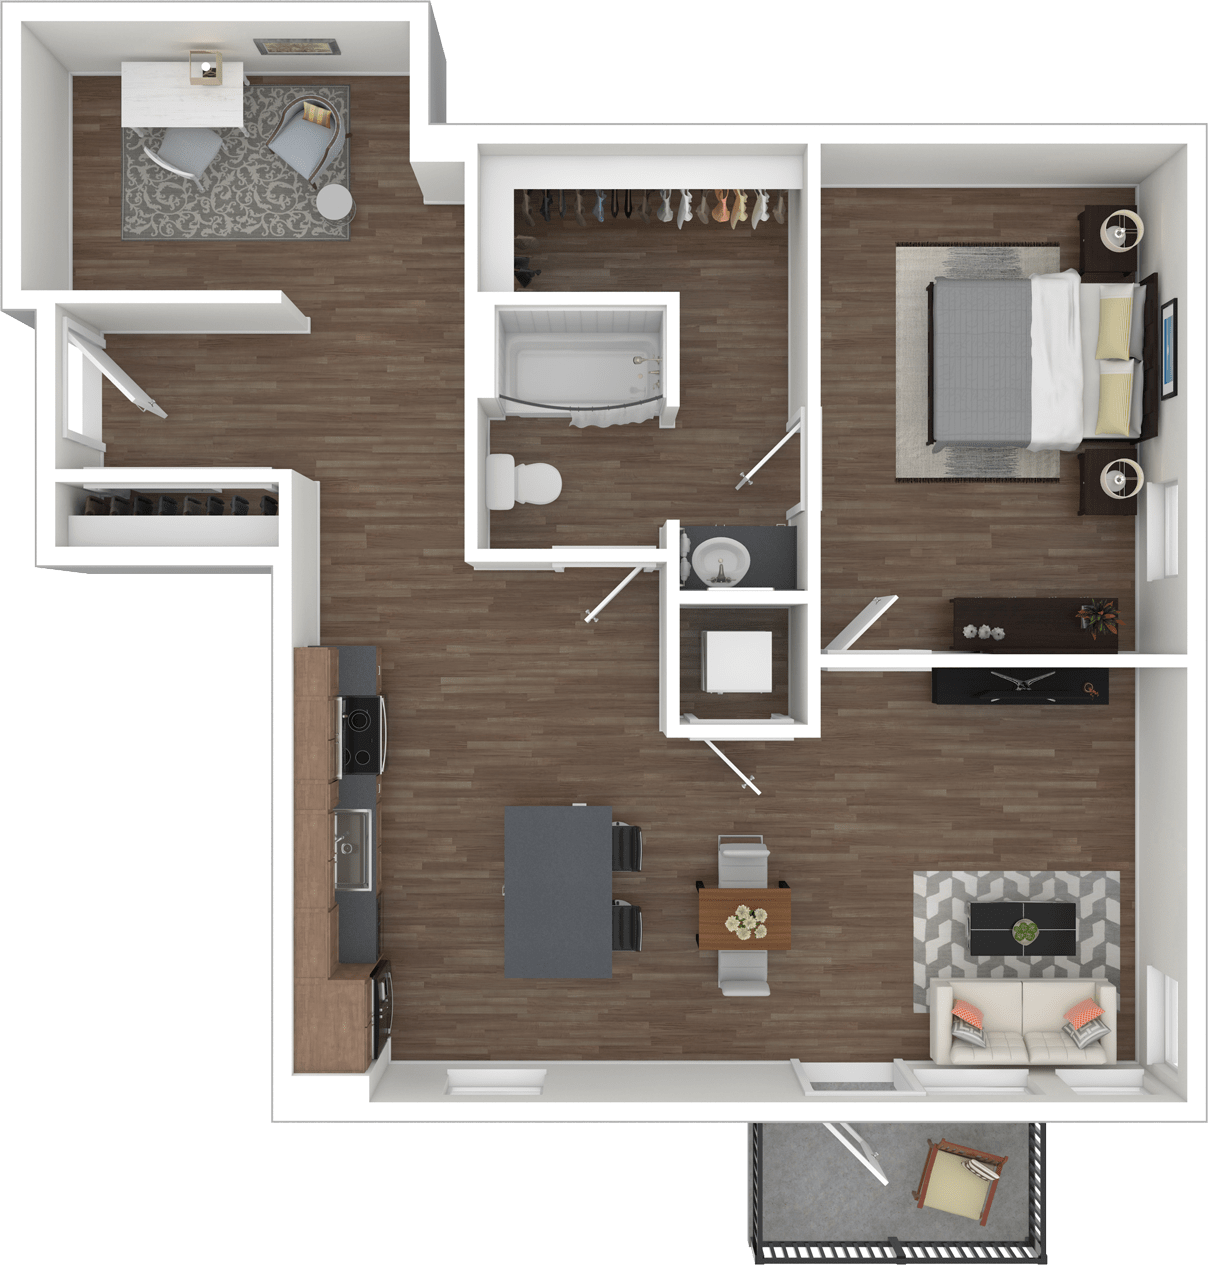 Floorplan A1O 1 Bed 1 bath